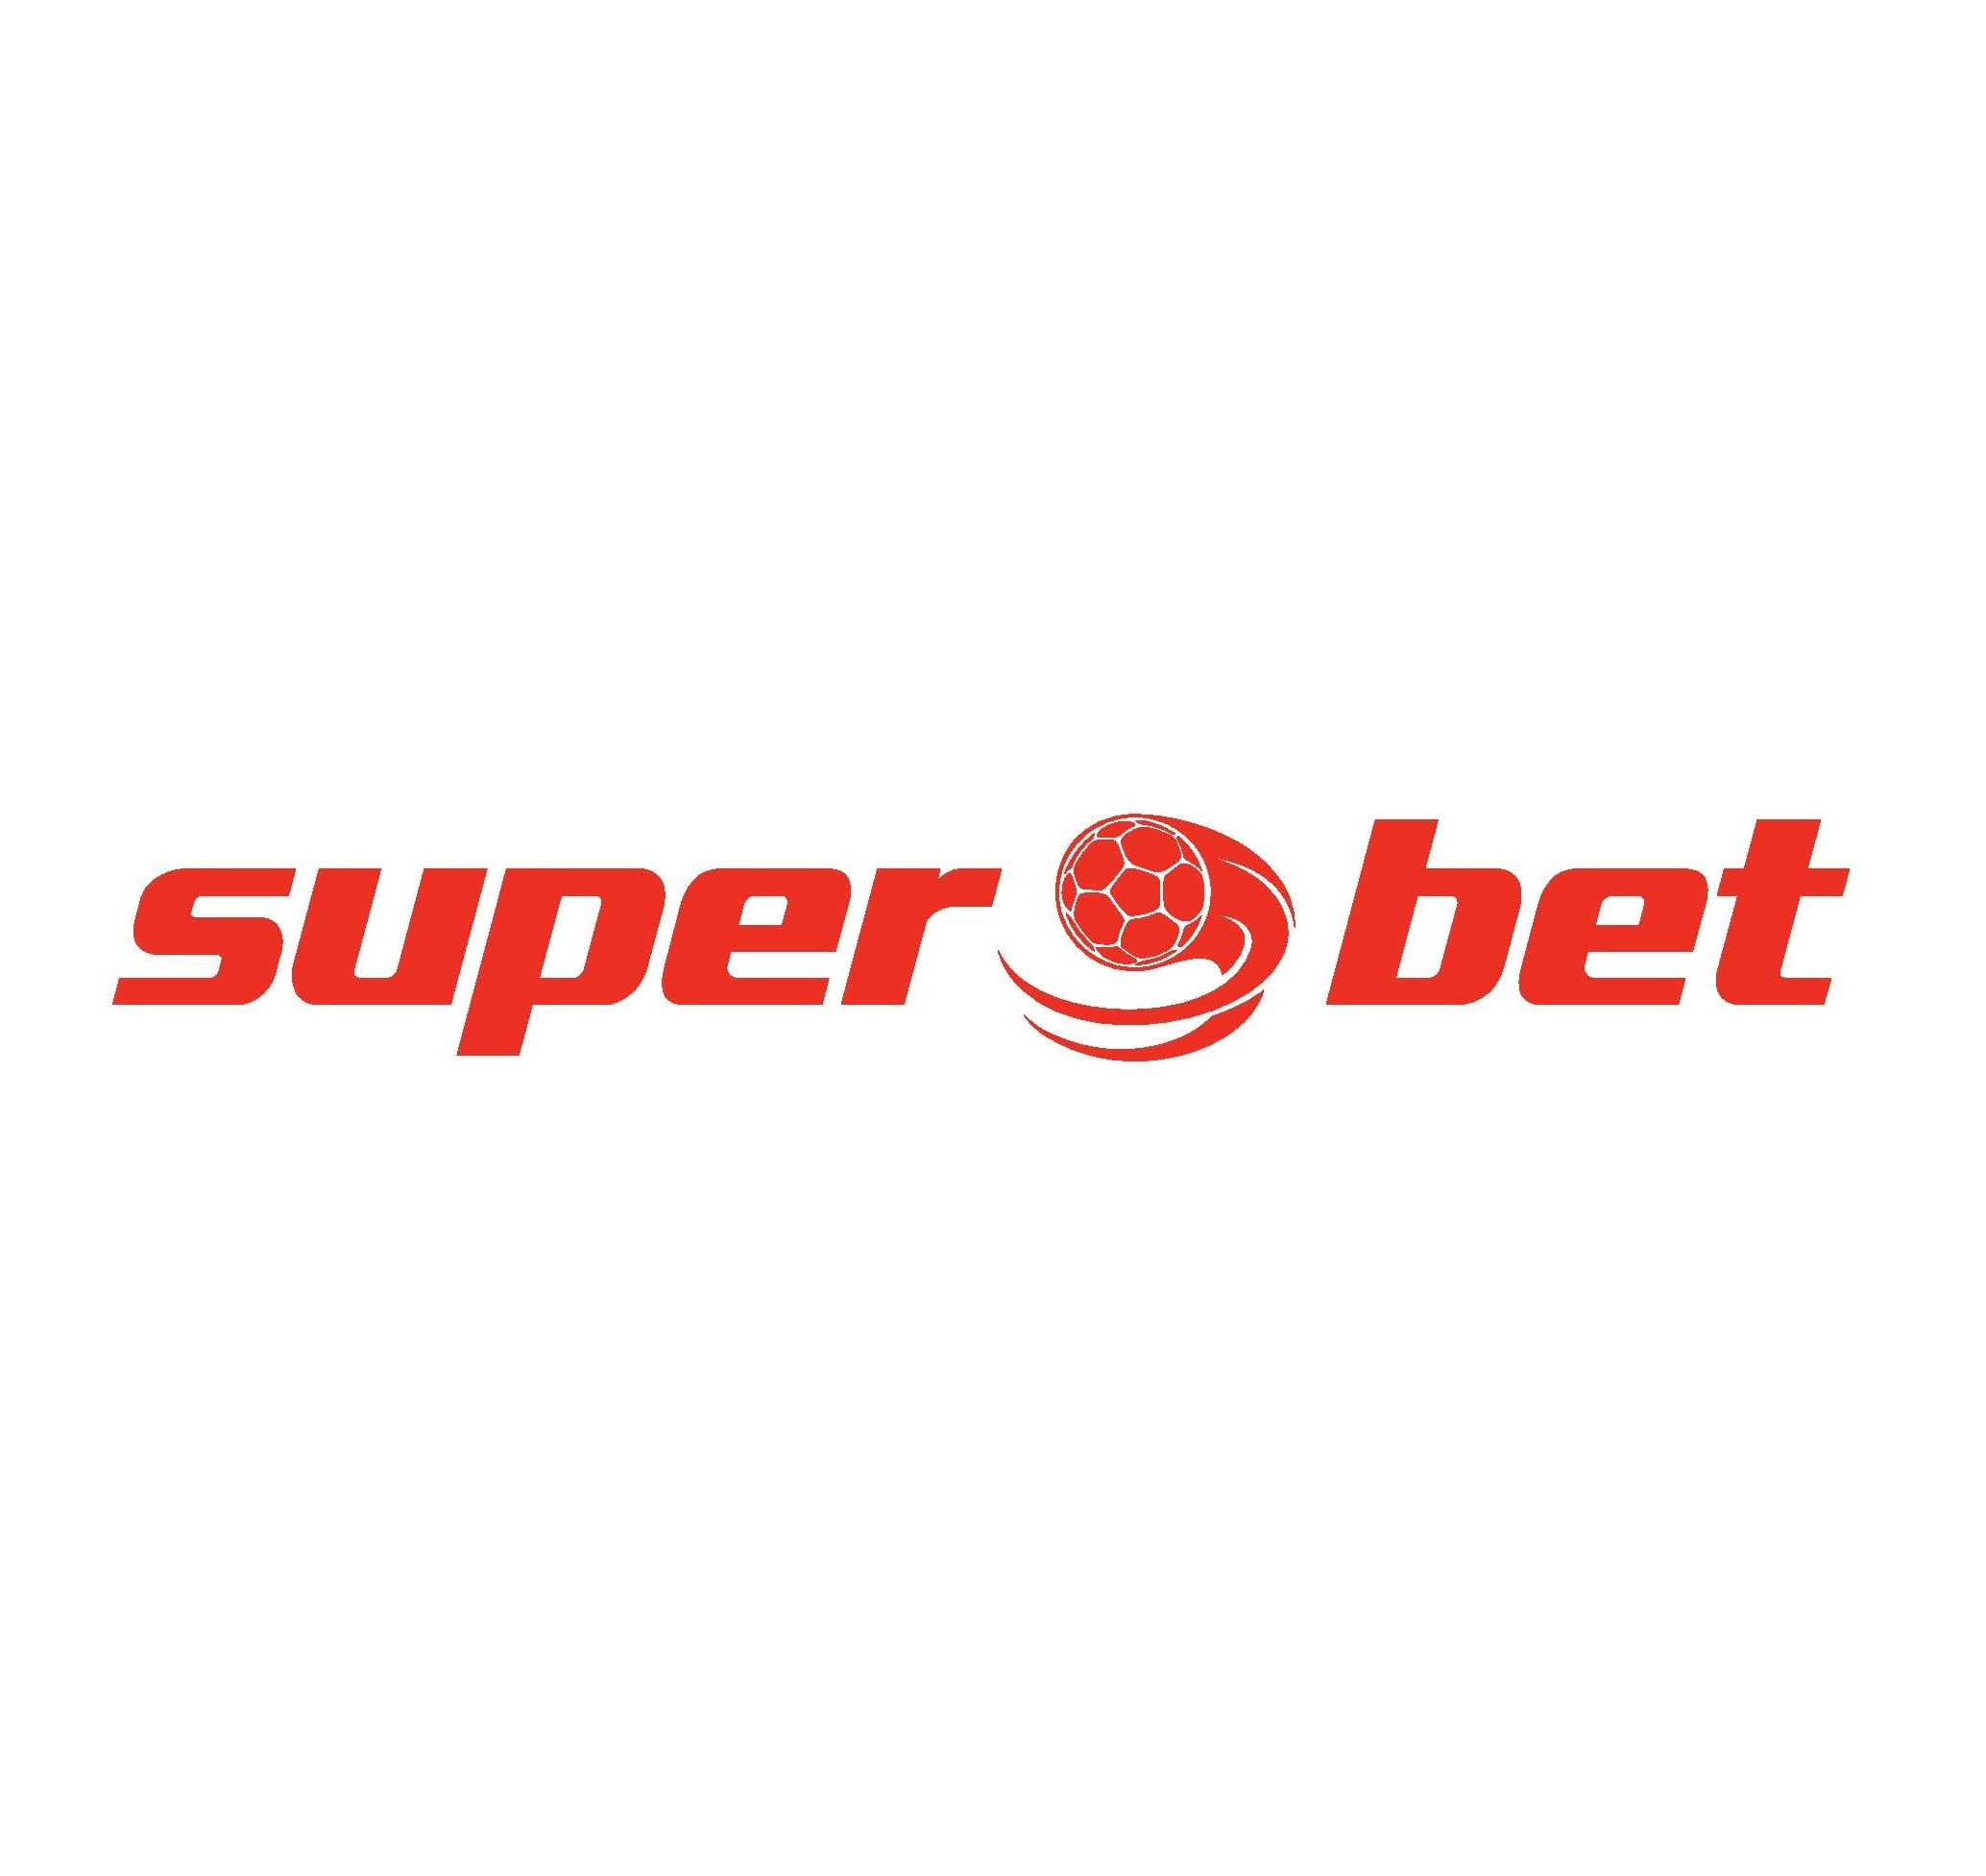 superbet dn1 balotesti